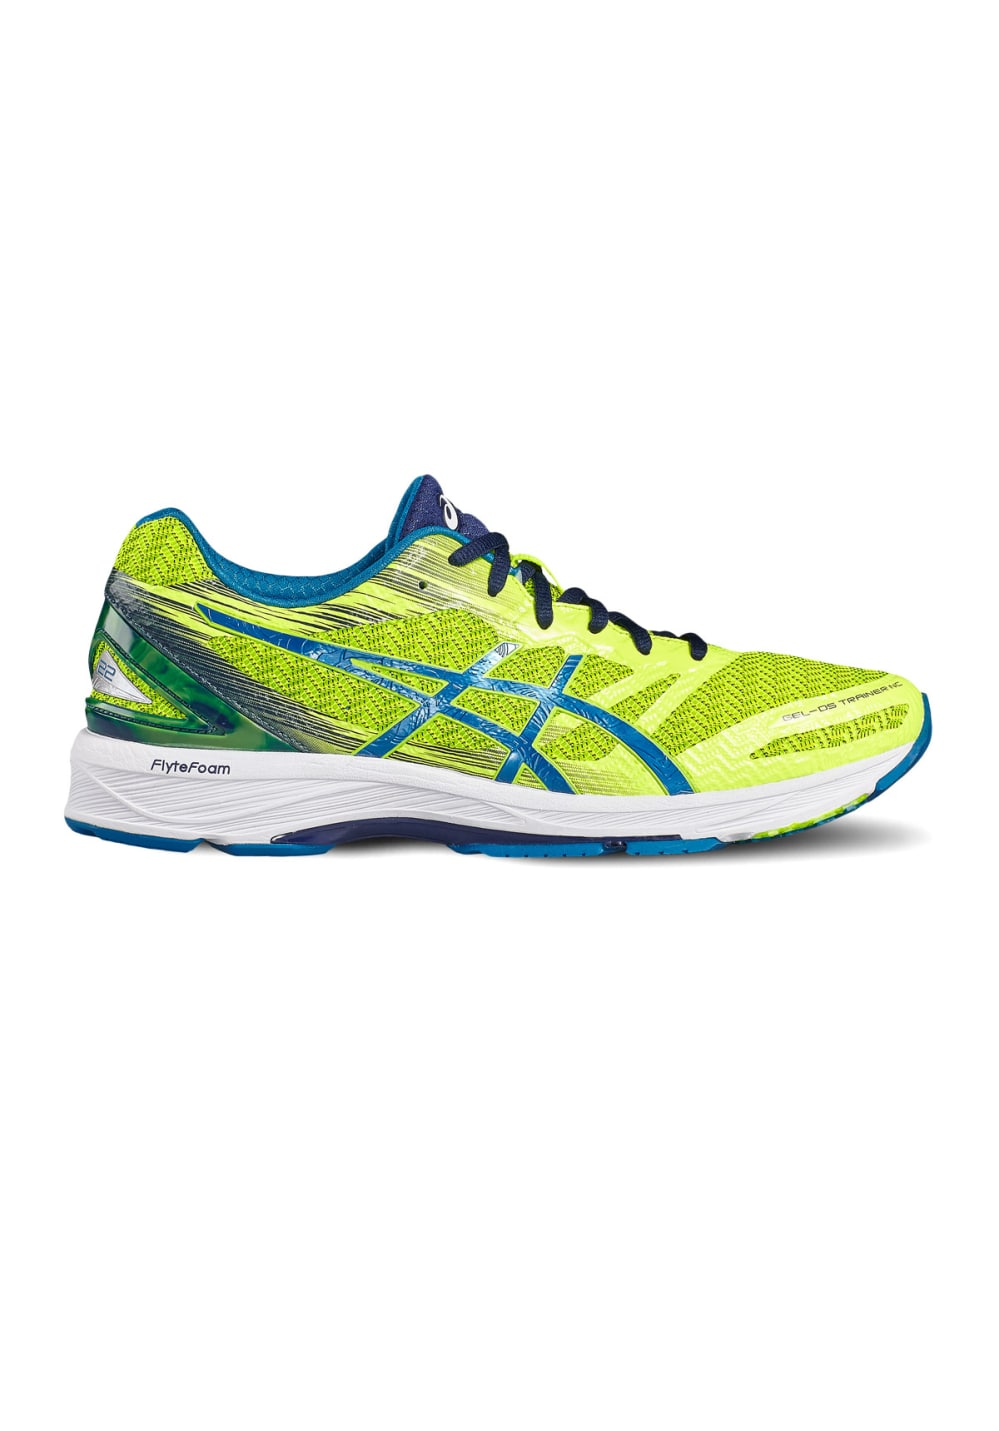 new arrival 71bad 910d6 ASICS GEL-DS Trainer 22 Neutral - Running shoes for Men - Grey